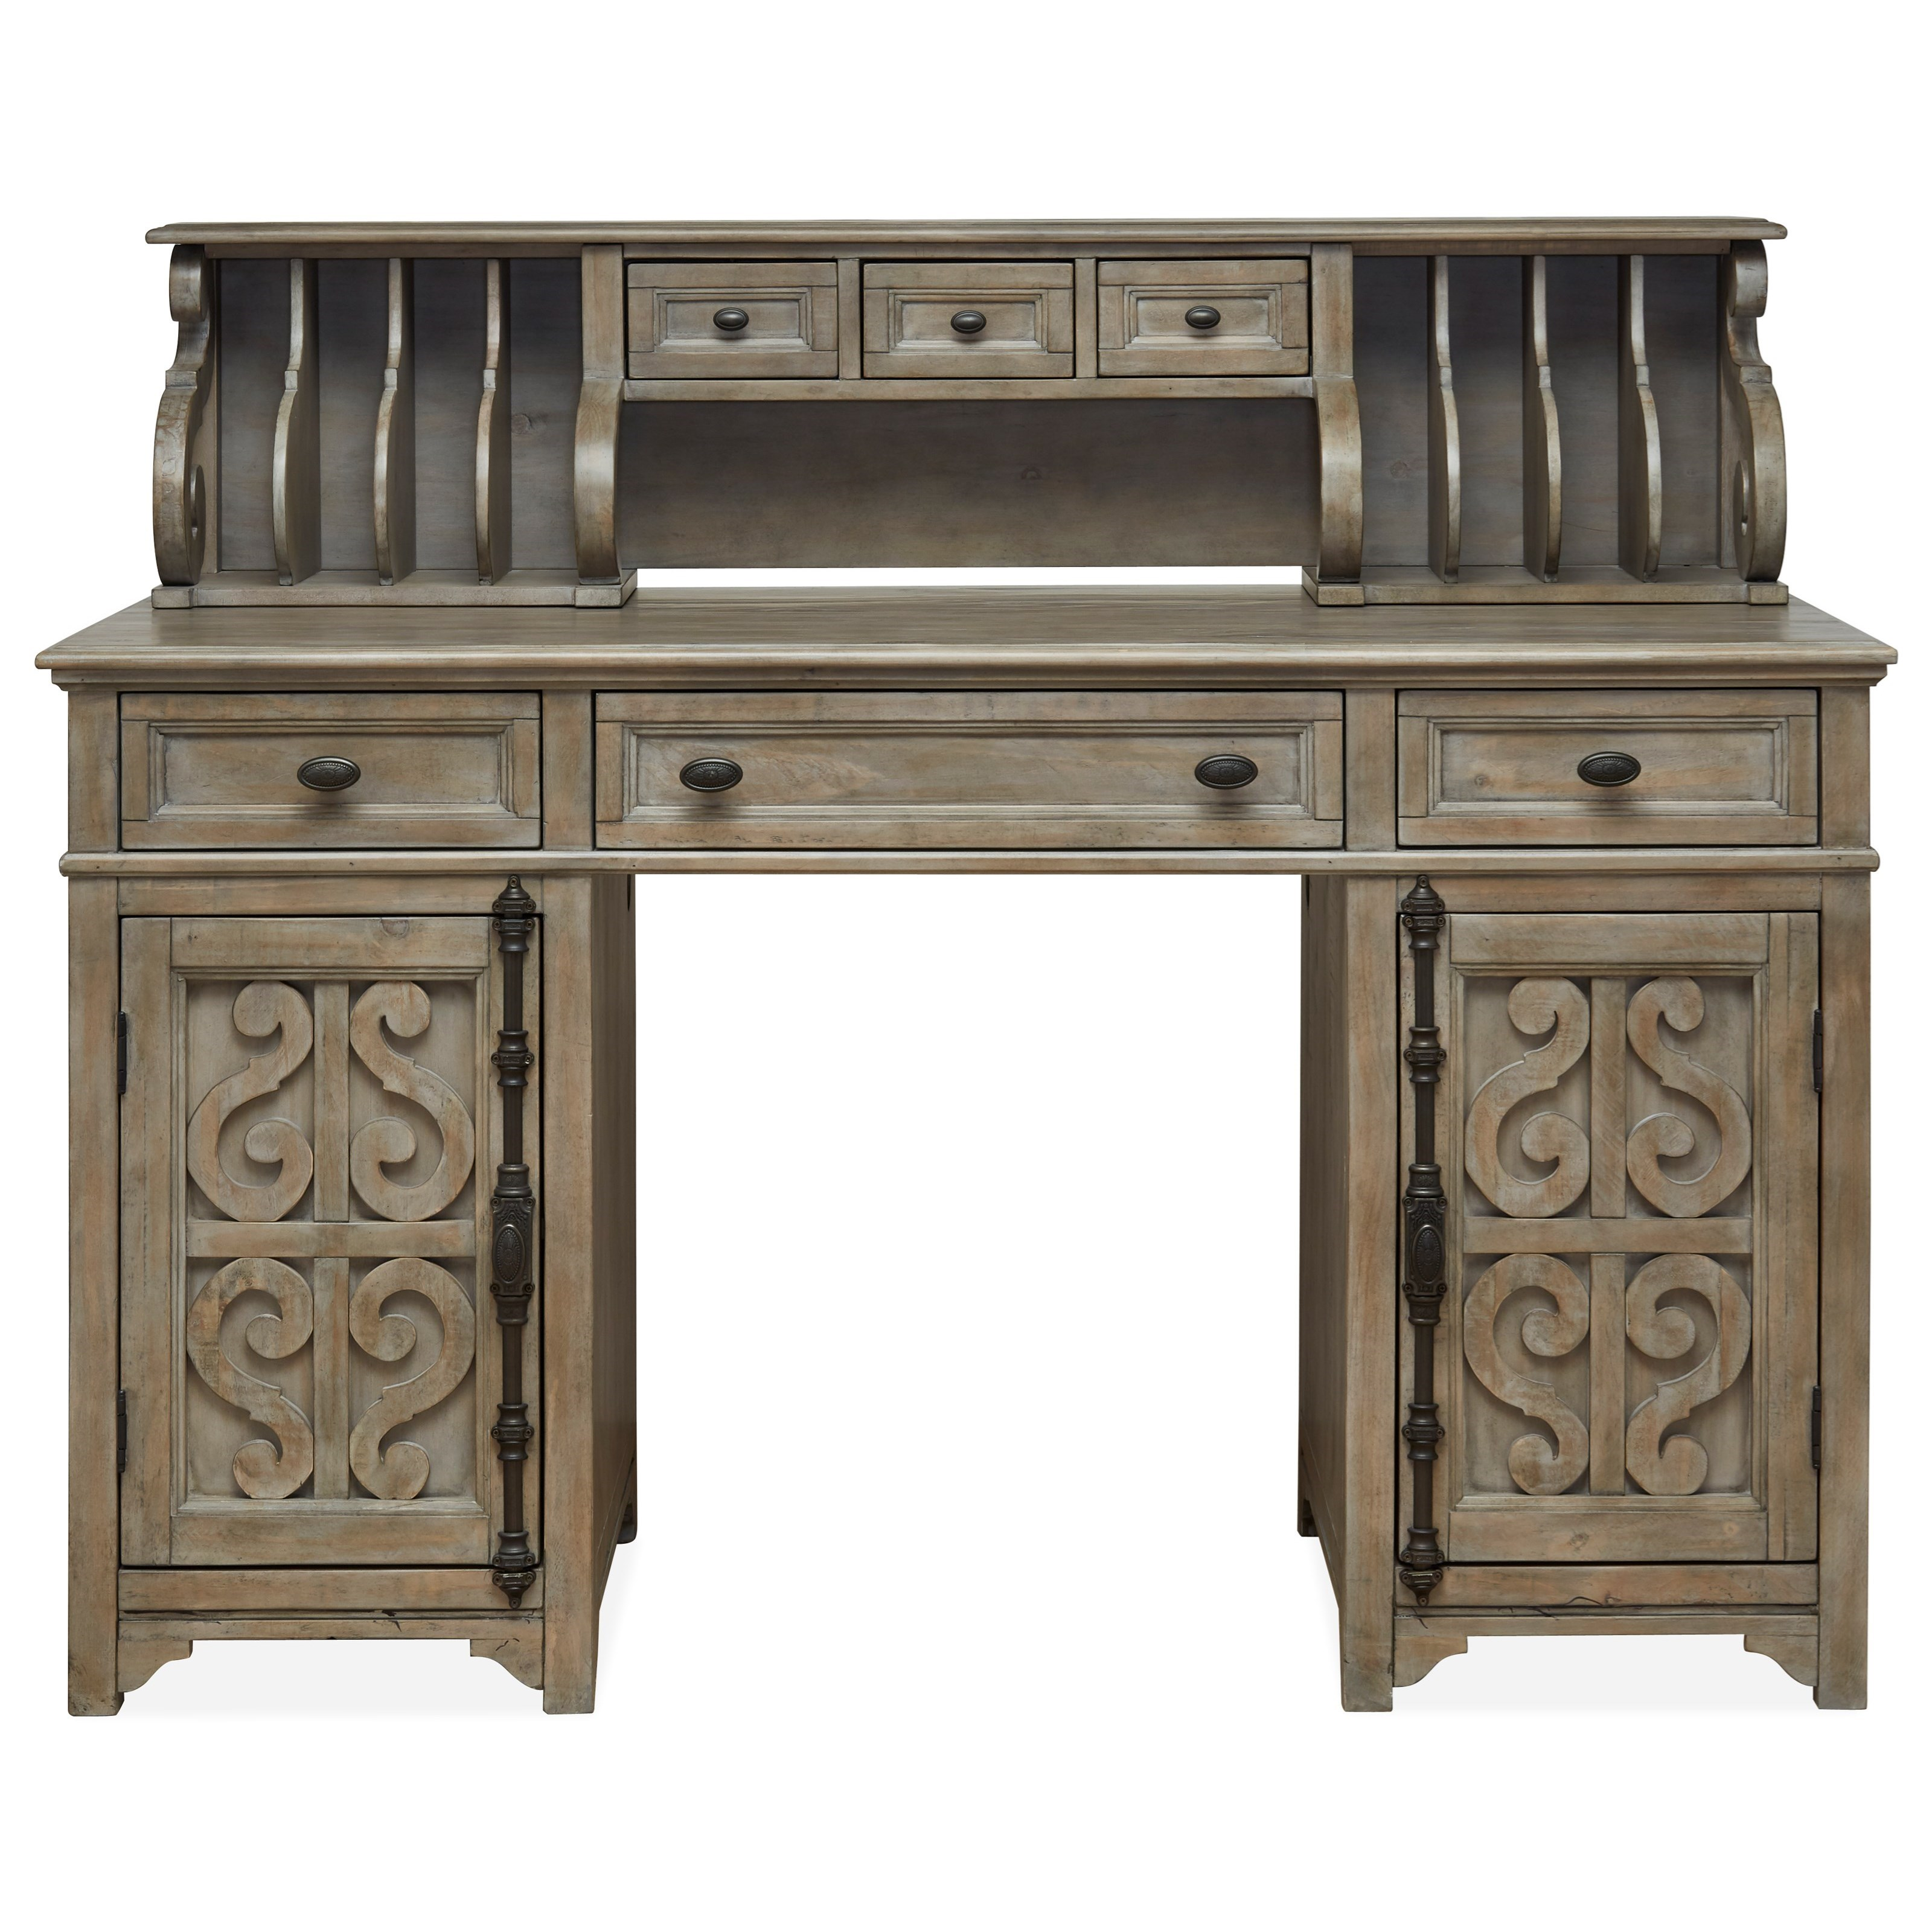 Tinley Park Counter Height Desk w/ Hutch by Magnussen Home at Baer's Furniture